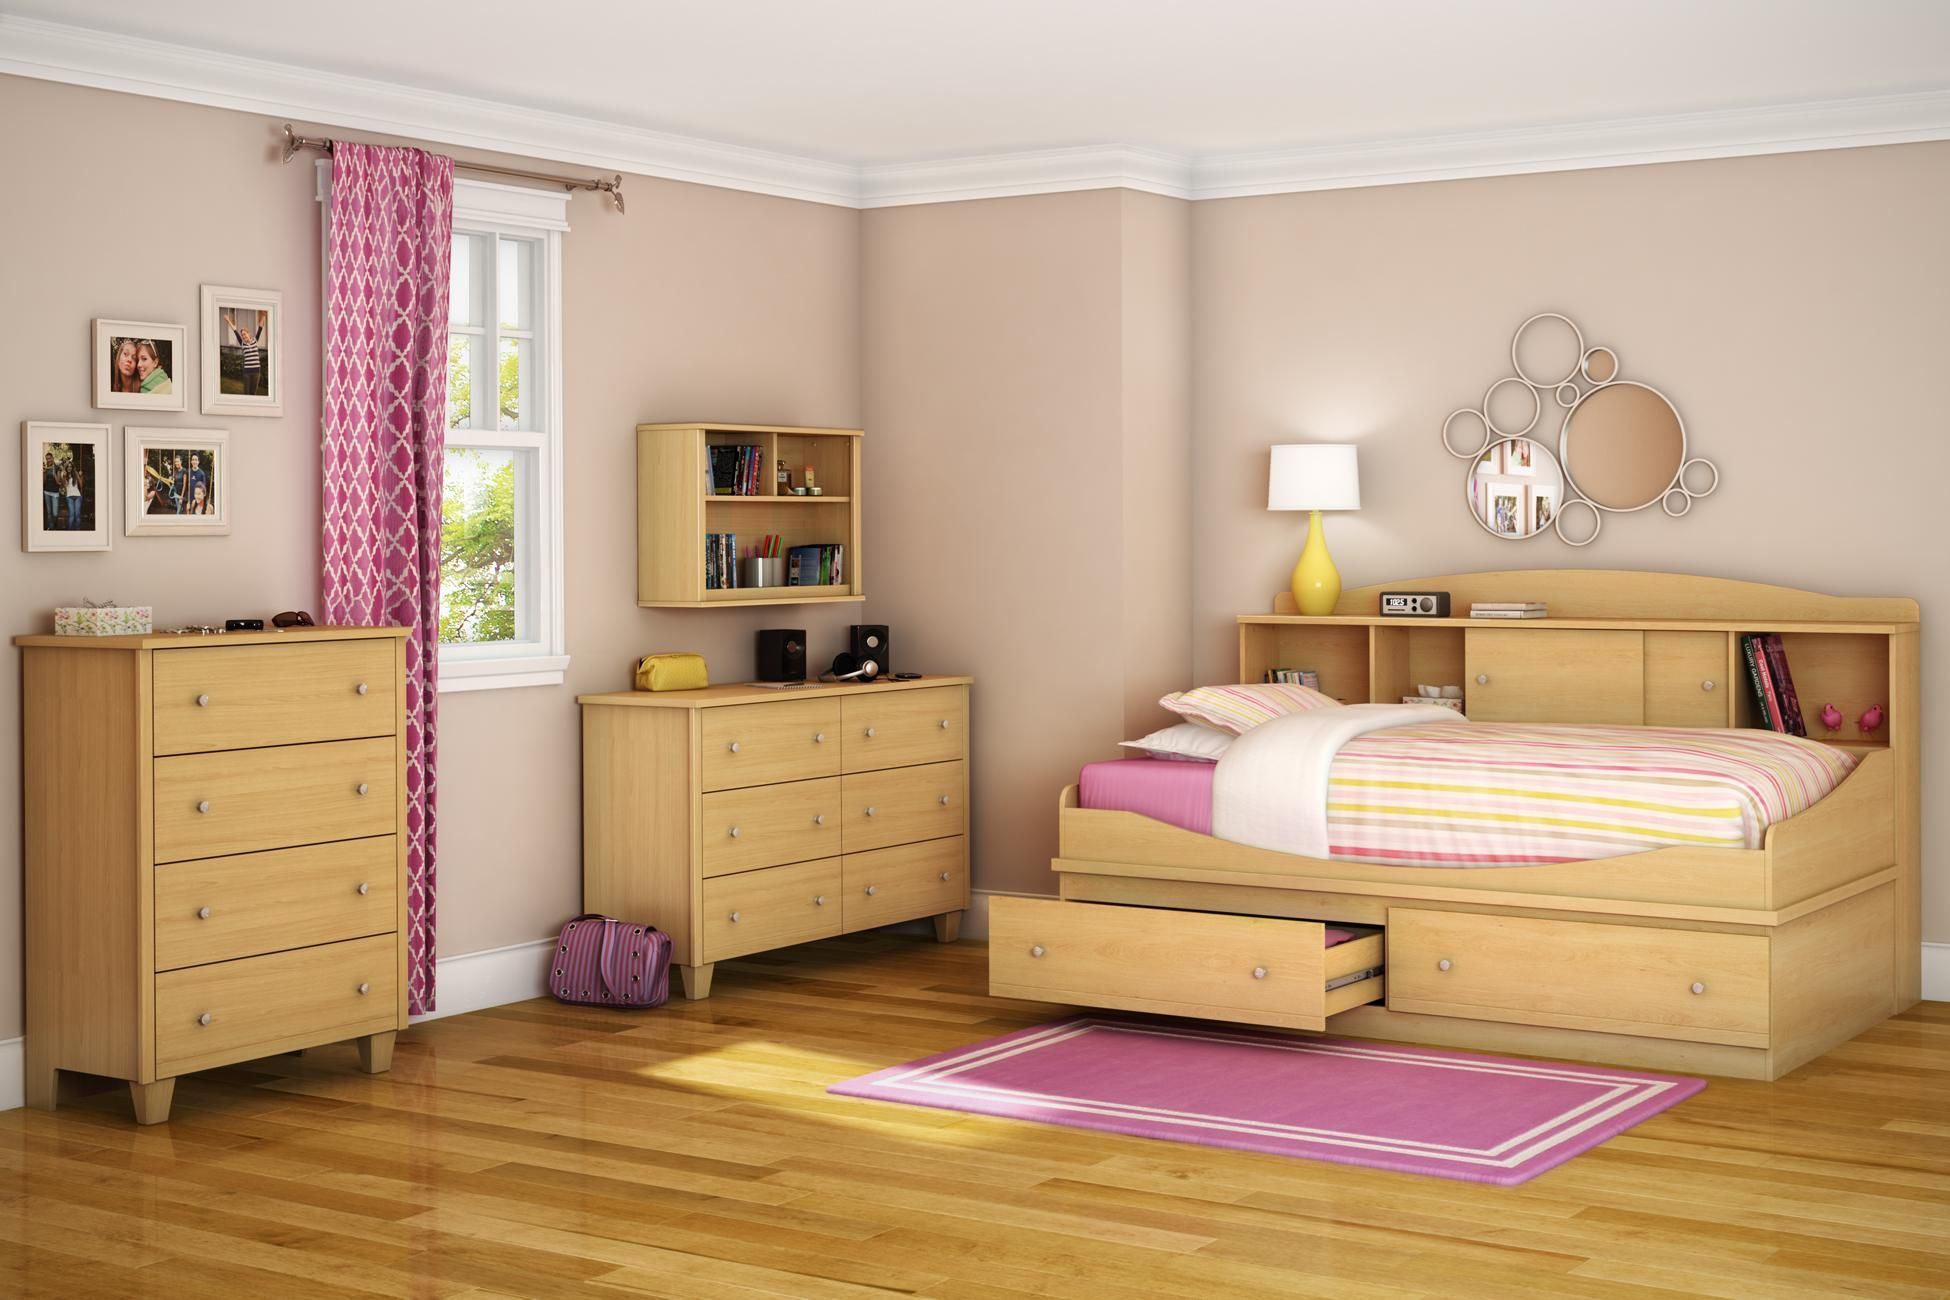 Teen Bedroom with Daybed